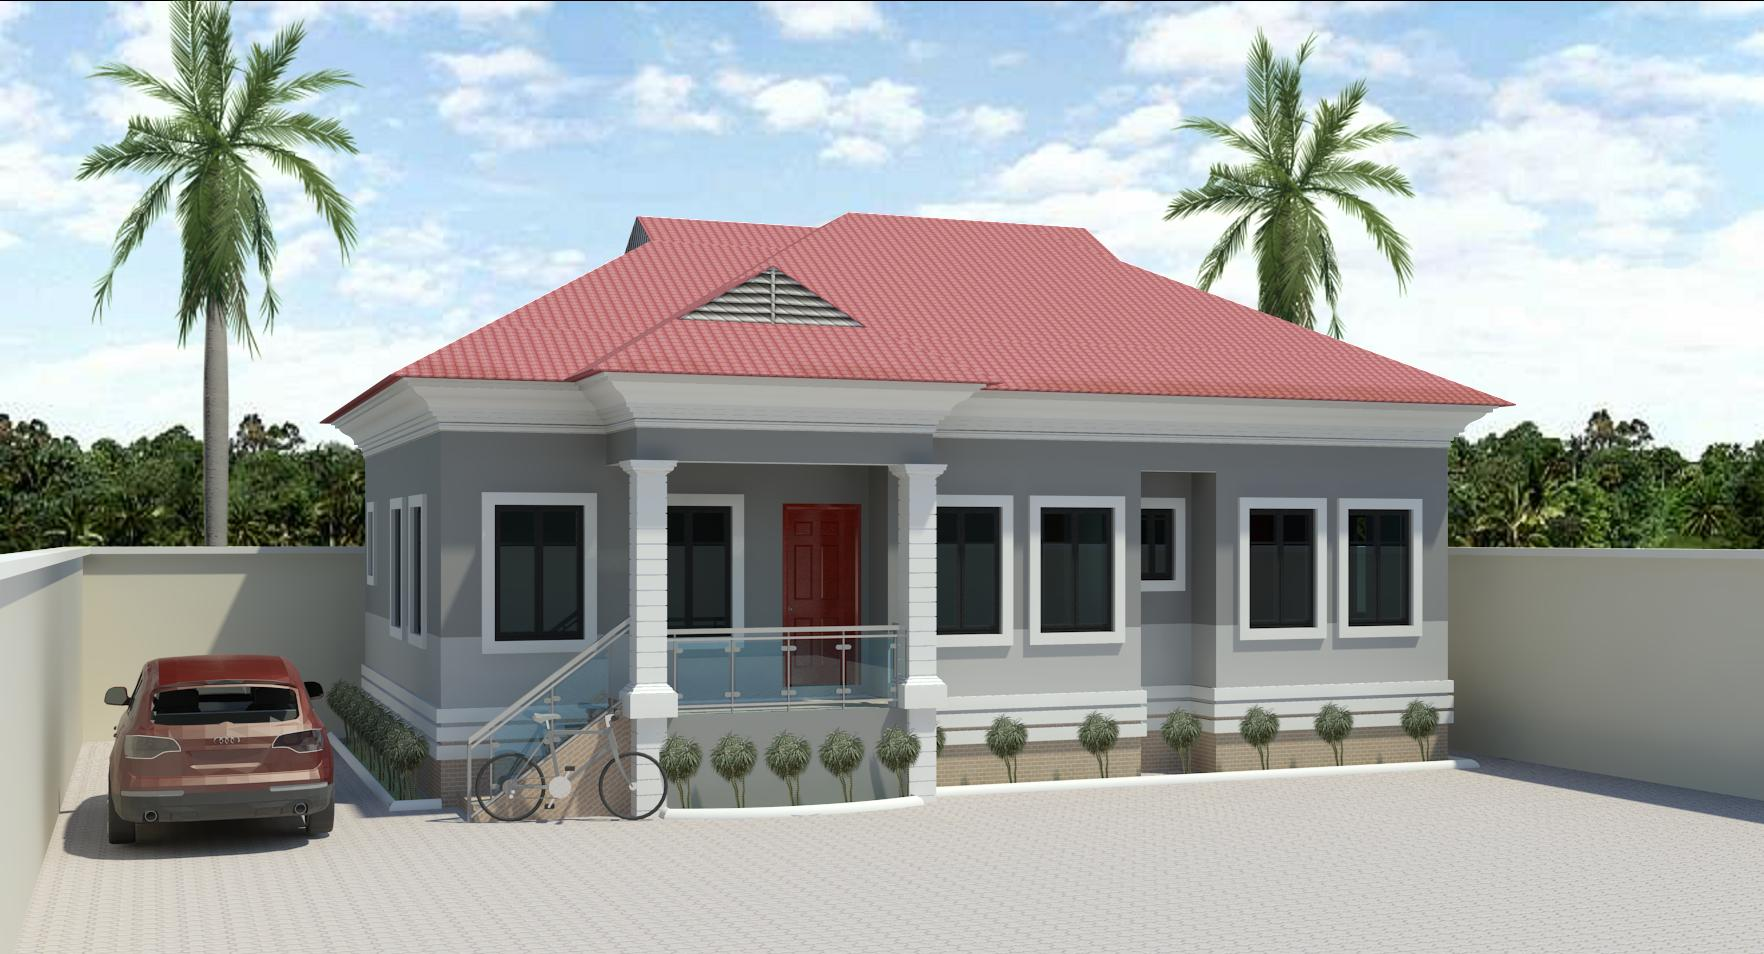 3bedroom bungalow designs in nigeria joy studio design for House plans for flats